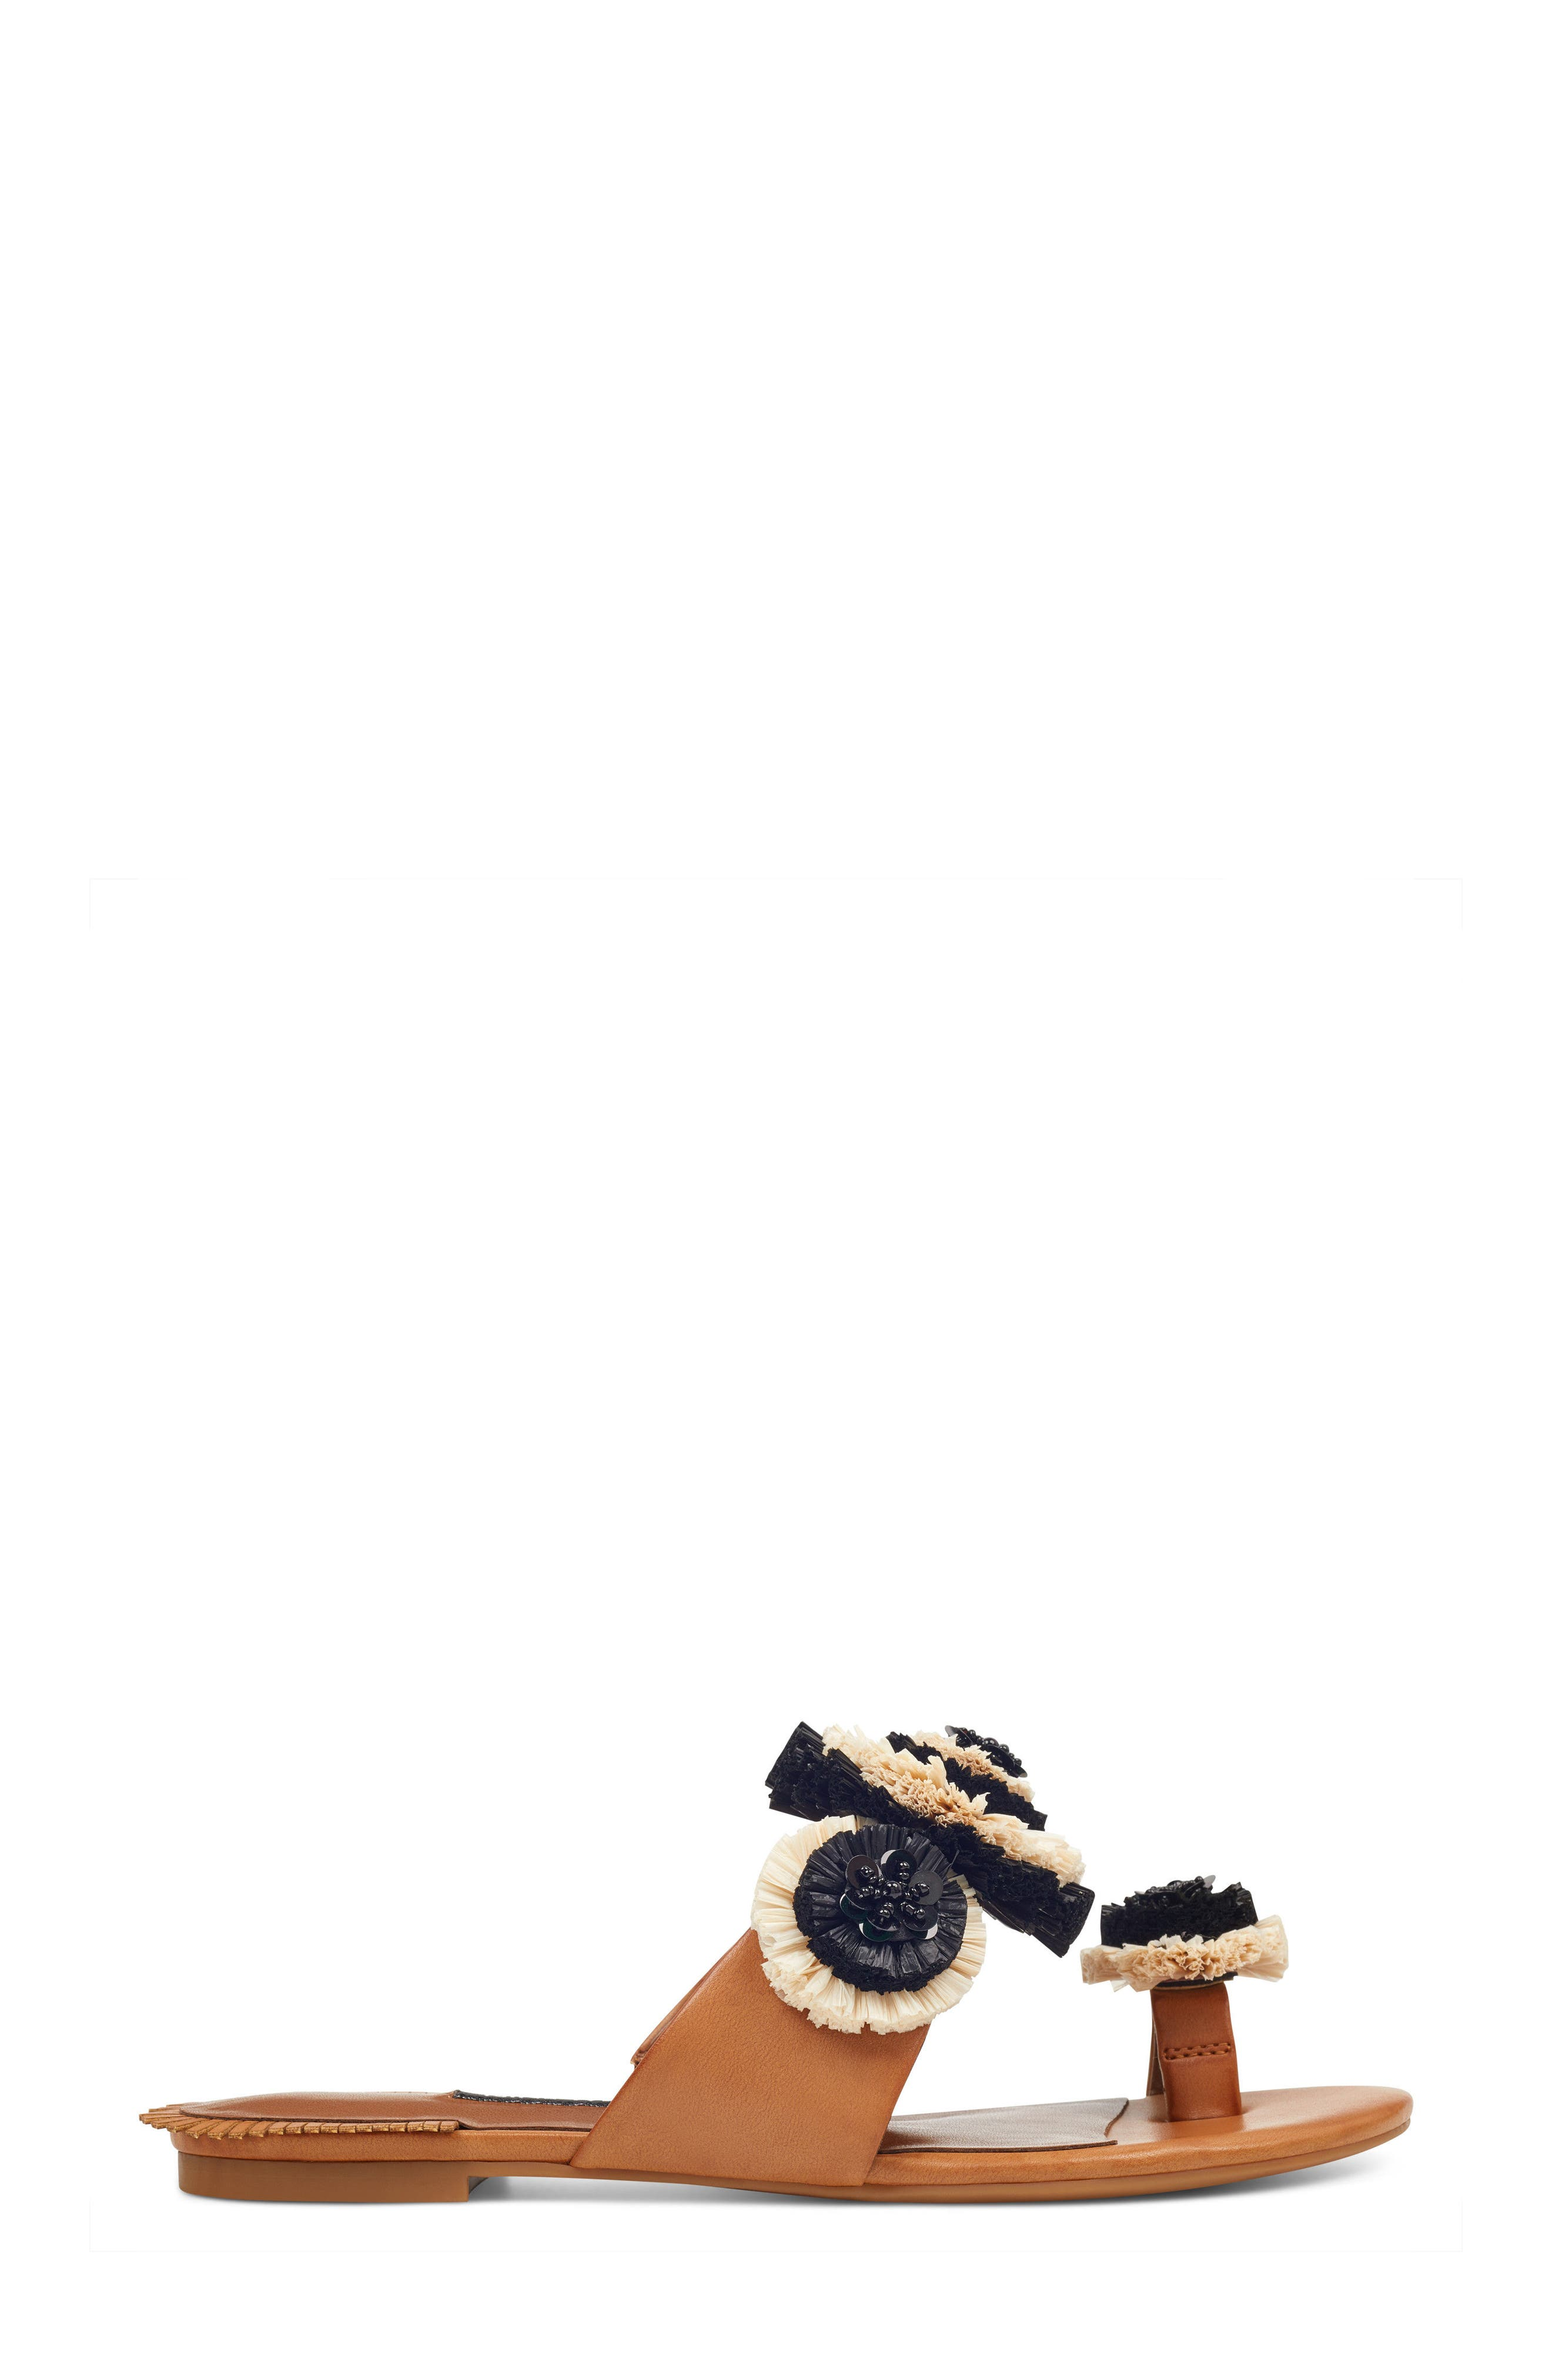 Sendran Raffia Flower Sandal,                             Alternate thumbnail 3, color,                             260